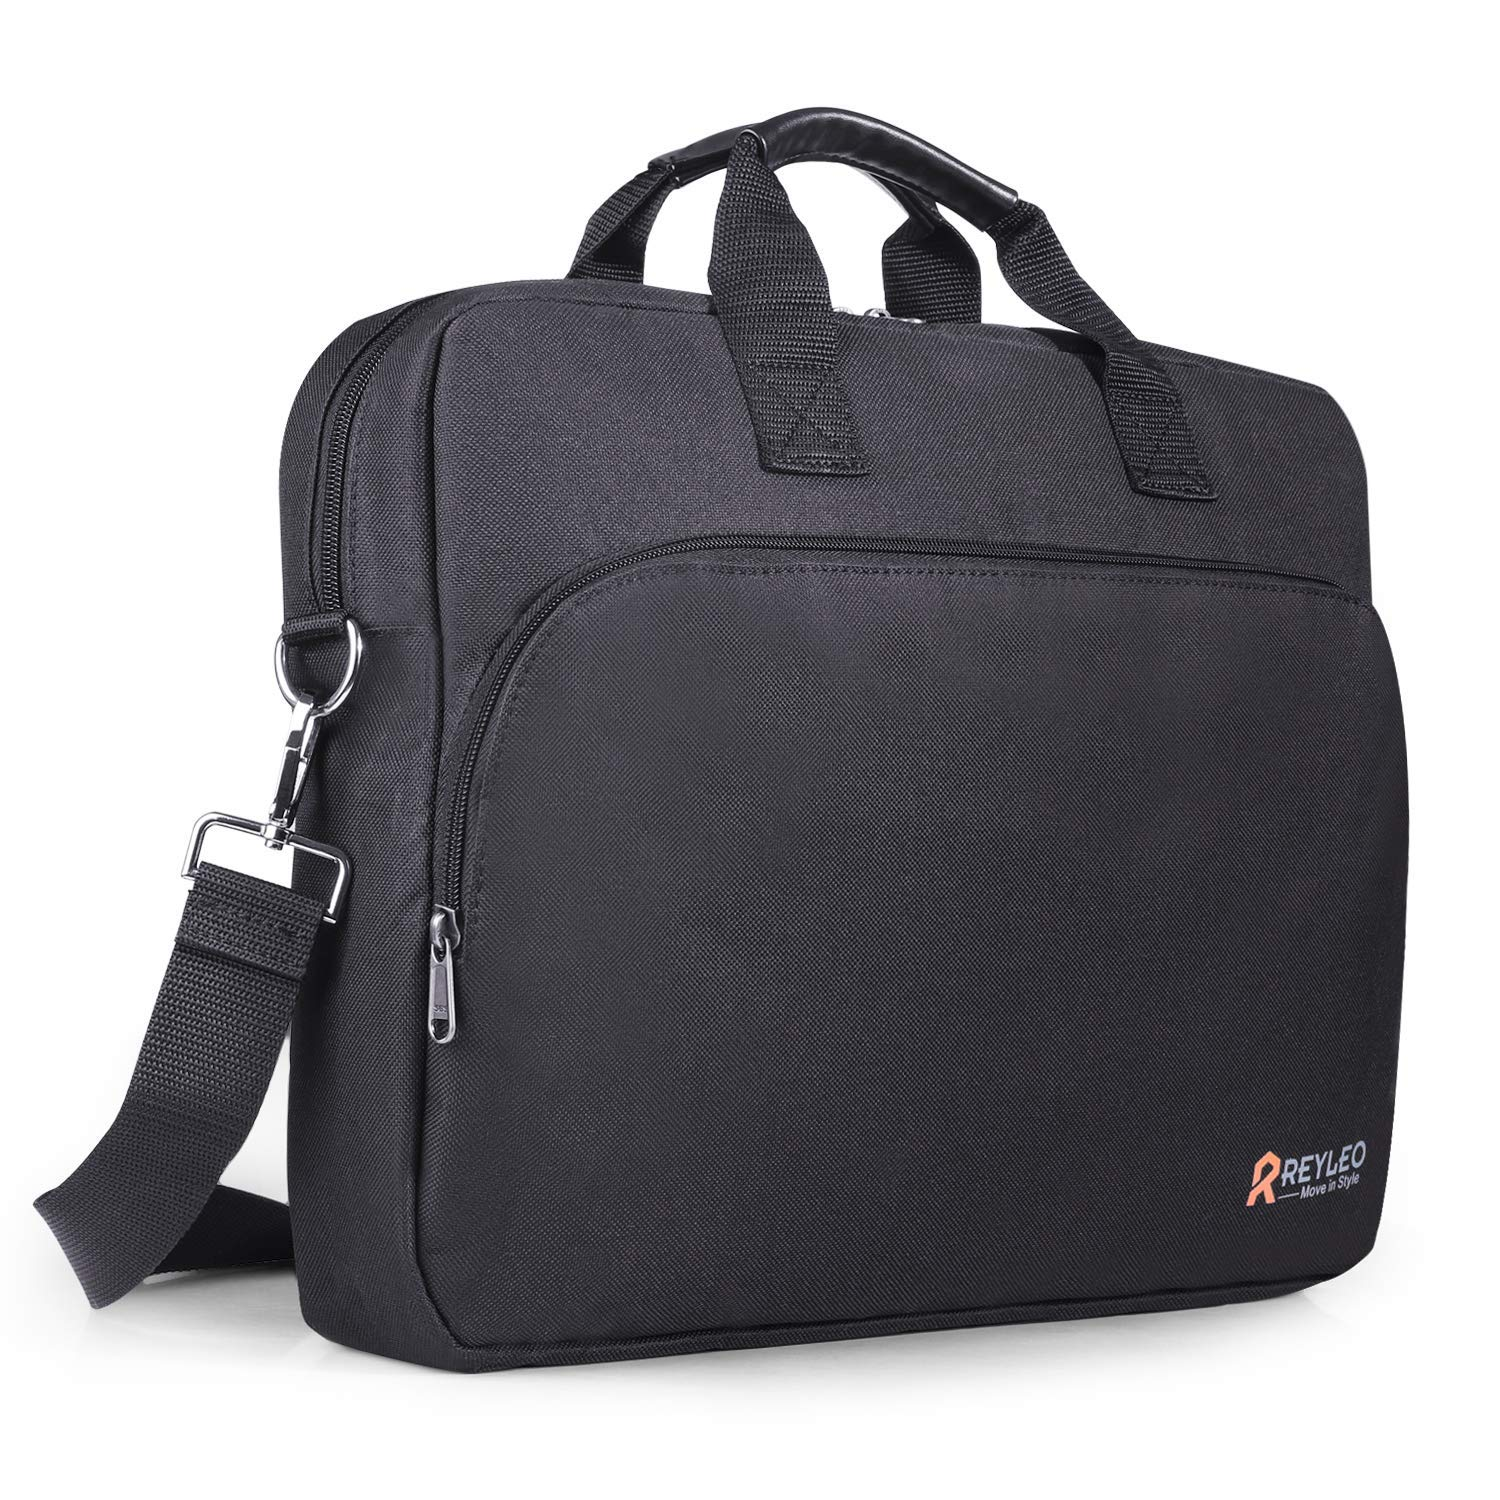 REYLEO 15.6 Inch Laptop Bag Travel Briefcase with Luggage Strap Water Resistant Shoulder Bag Business Messenger Briefcases for Men and Women Fits Laptop Computer Tablet, LCB1B by REYLEO (Image #1)